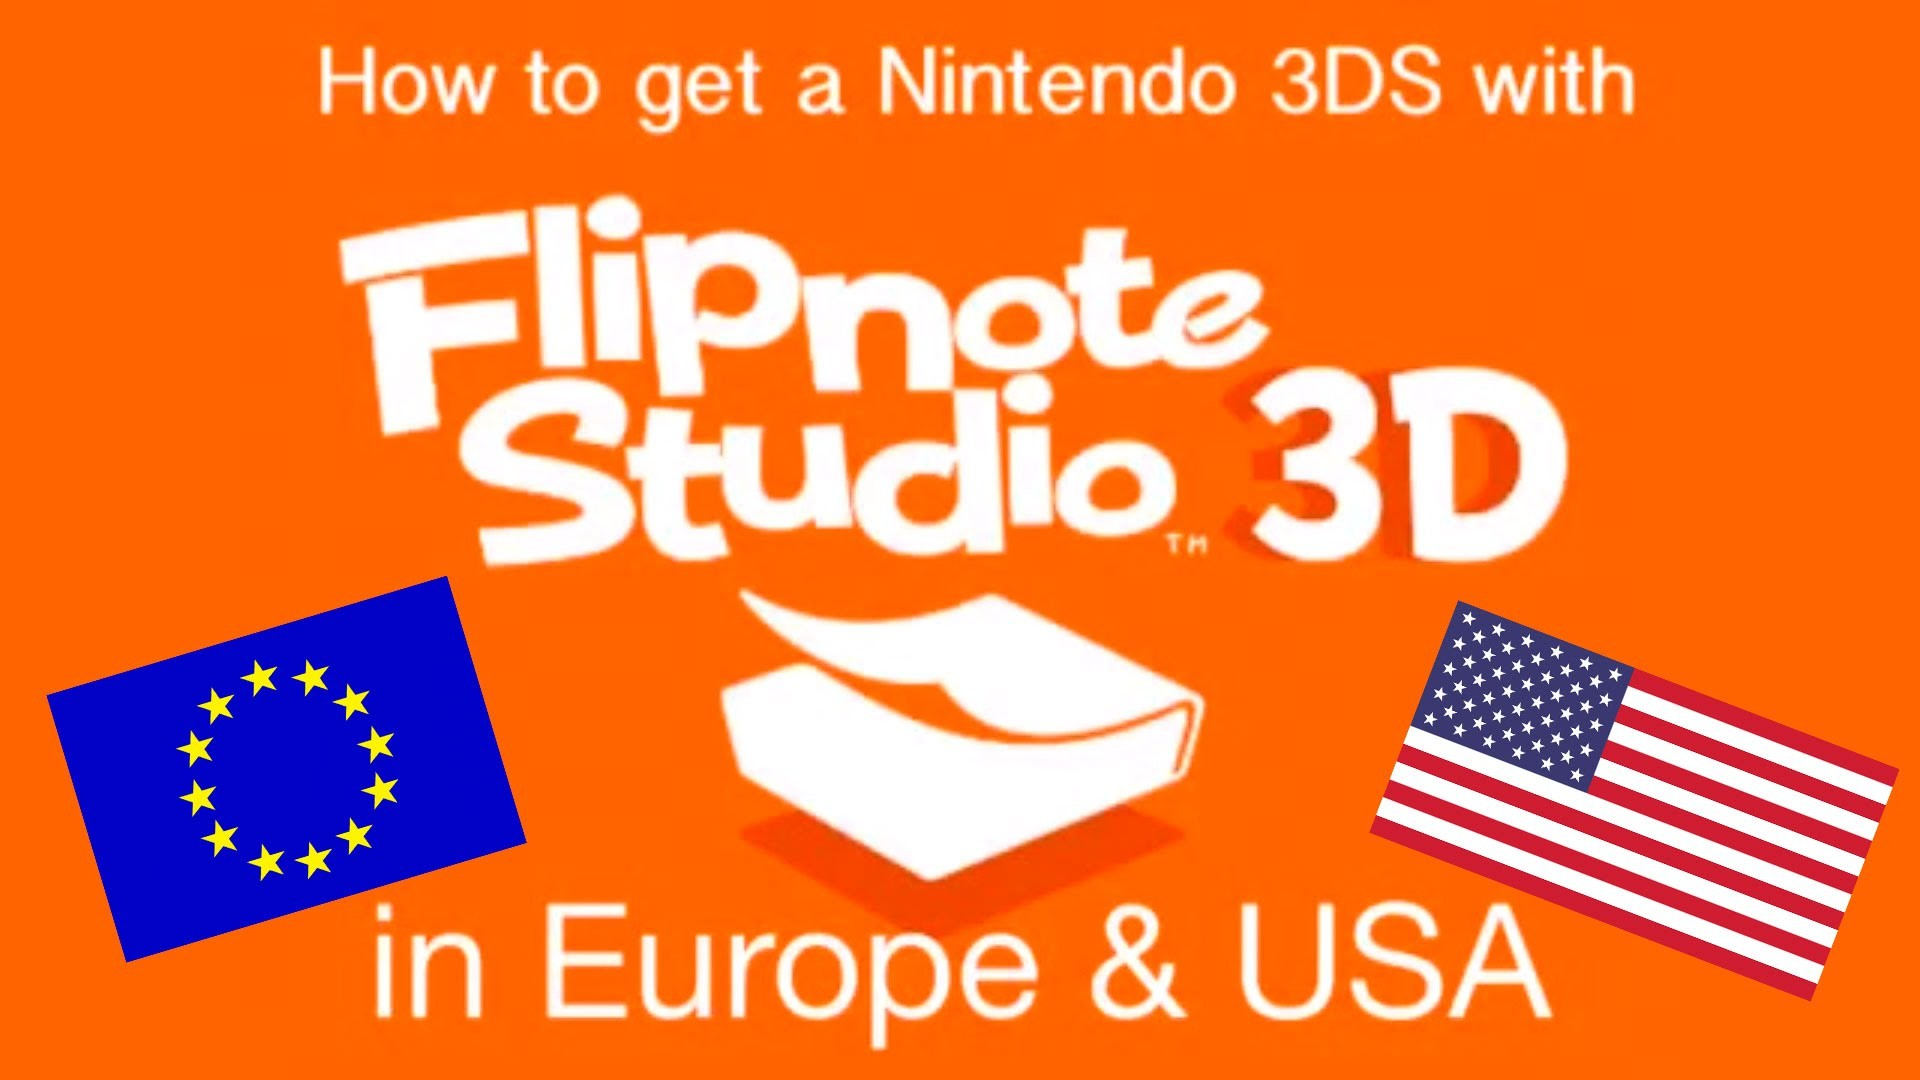 How to get a Nintendo 3DS with Flipnote Studio 3DS in Europe and USA,  geezerdk